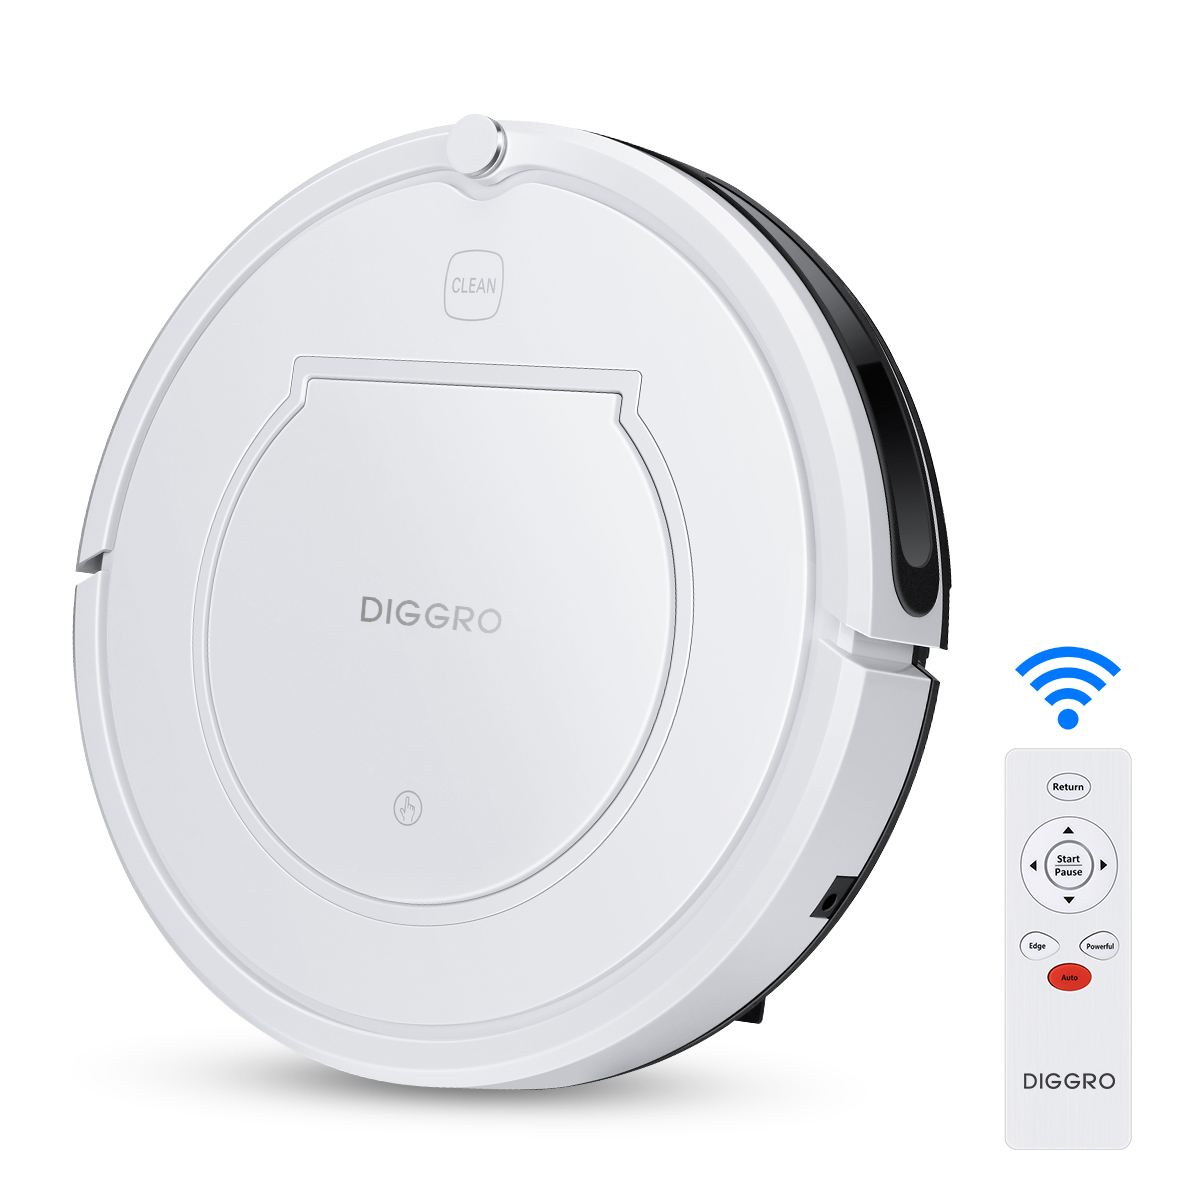 Diggro Robot Vacuum Cleaner, KK320 Robotic Vacuum with One-Key Planning Tech, Powerful Clean for Pets, Suitable for Low-Pile Carpets and Hard Floors